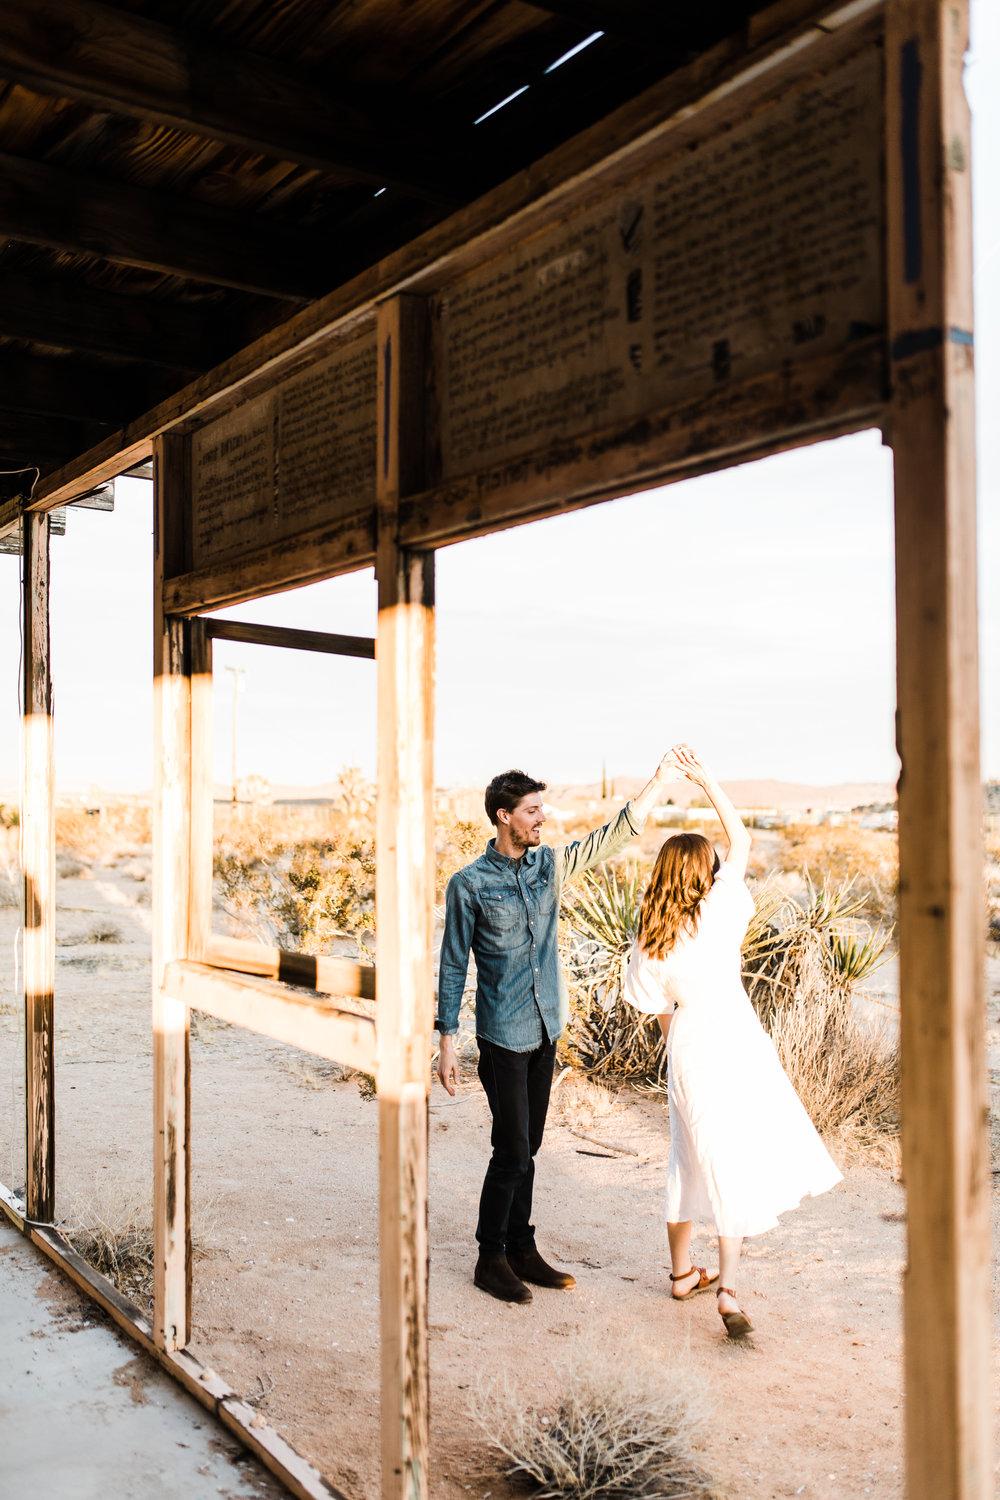 Natalie&AJ-Joshua-Tree-Acres-Airstream-Engagement-Session-Clarisse-Rae-Southern-California-Wedding-Photographer_26